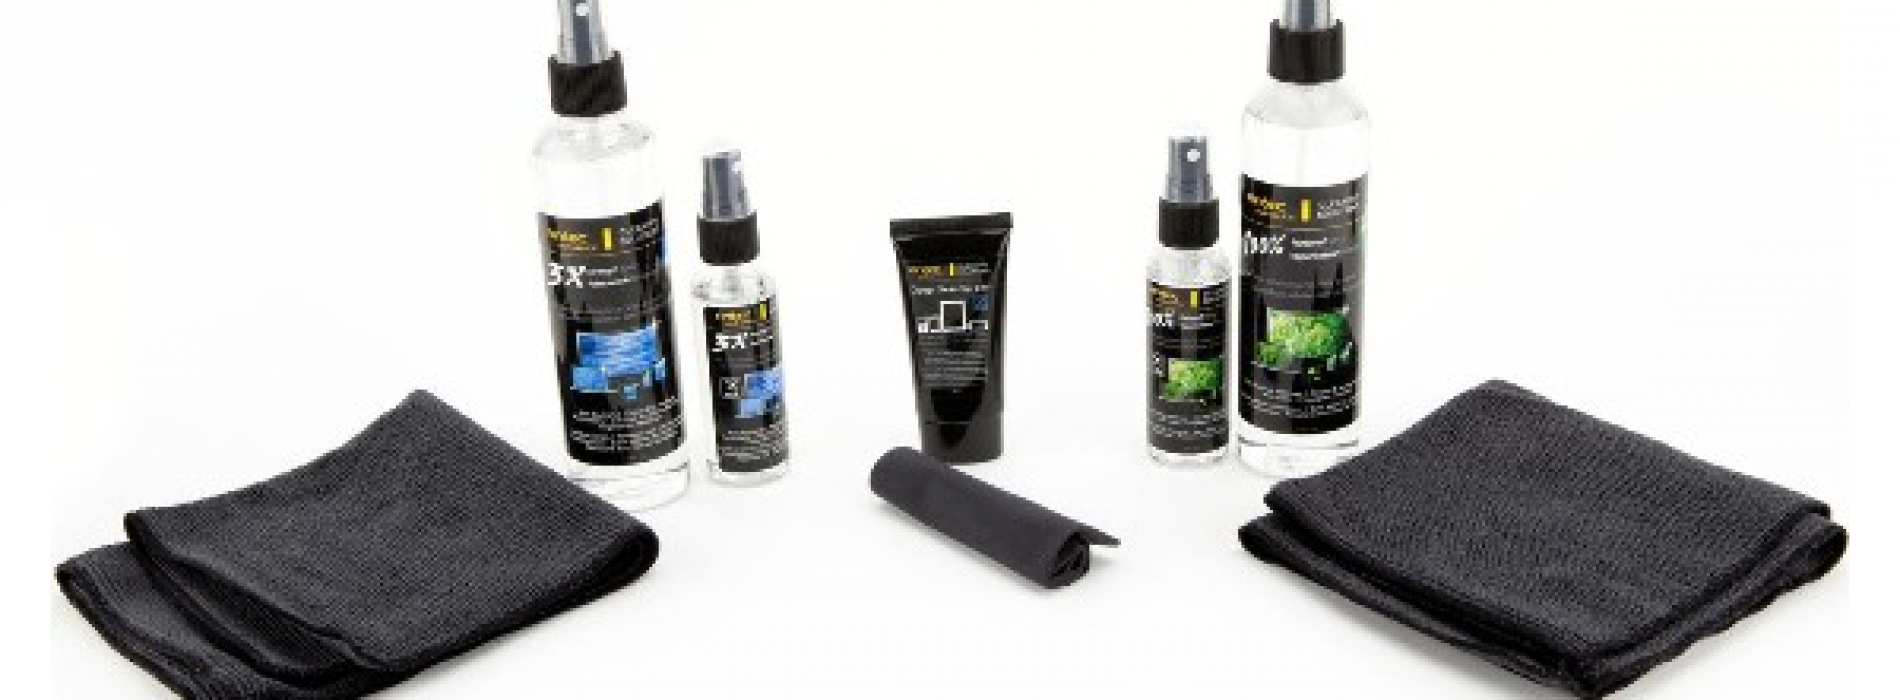 Review: Antec Cleaning Spray Kit